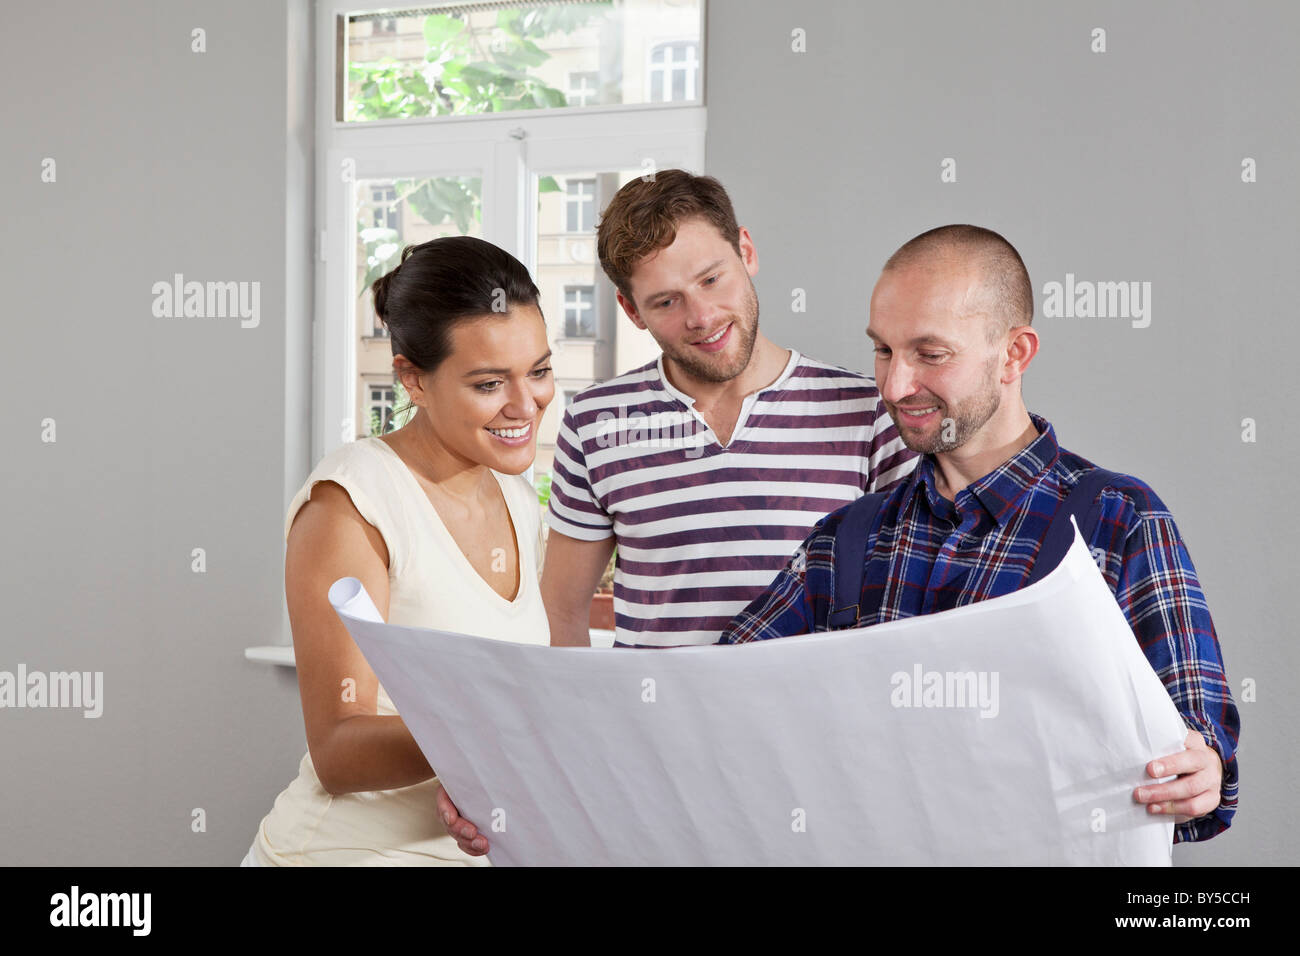 A building contractor showing blueprints to a young couple - Stock Image